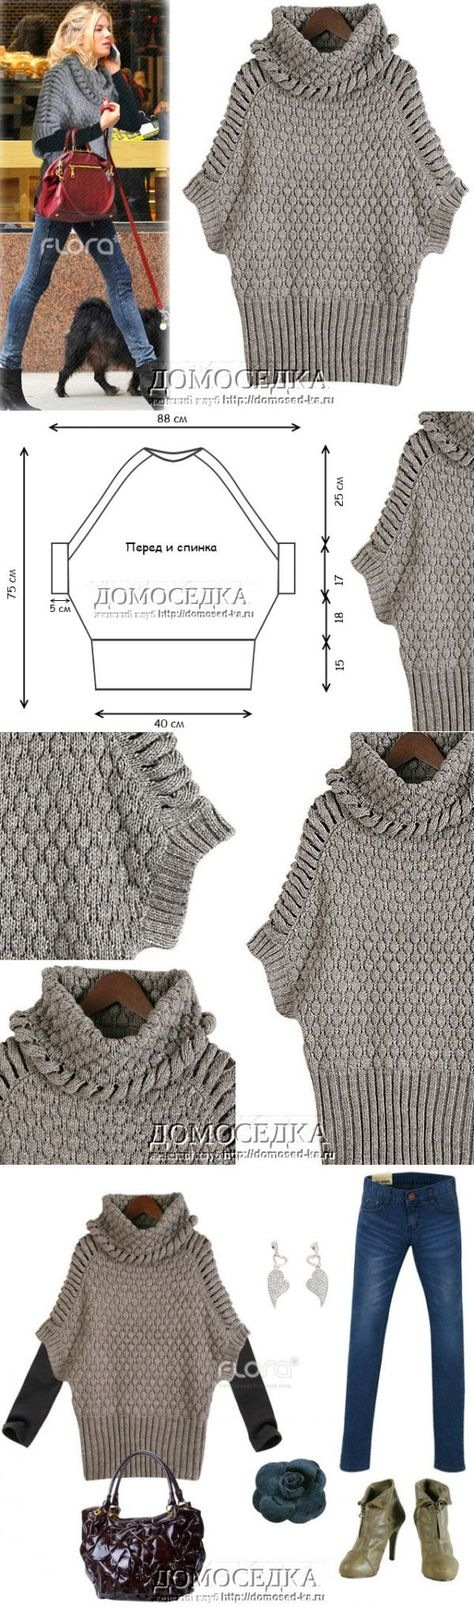 17 best ideas about circular sweater on pinterest.